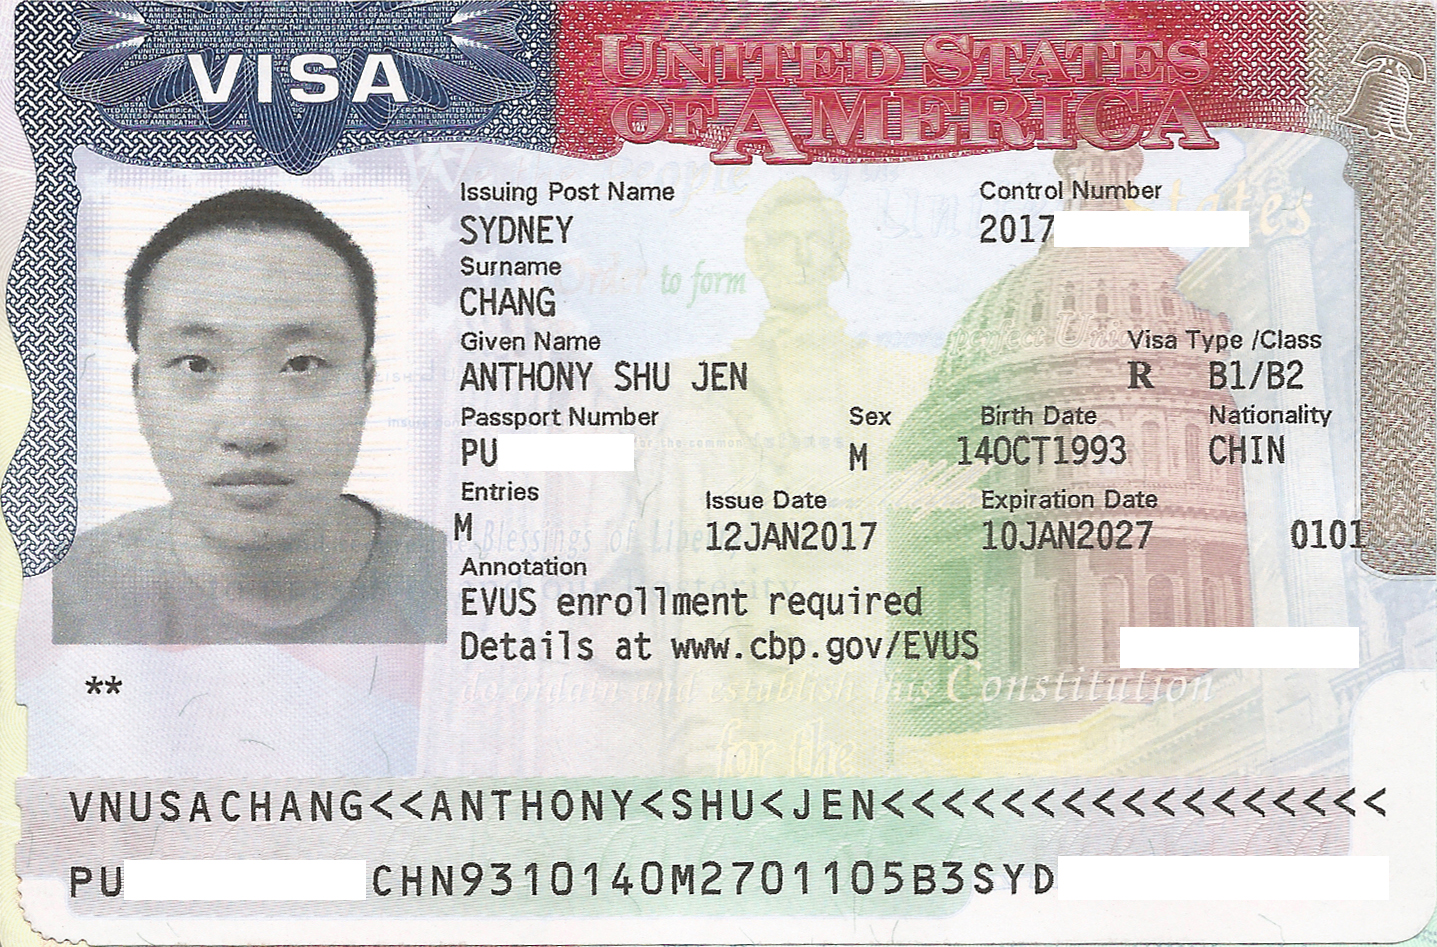 How Long Can Travel Before Passport Expires